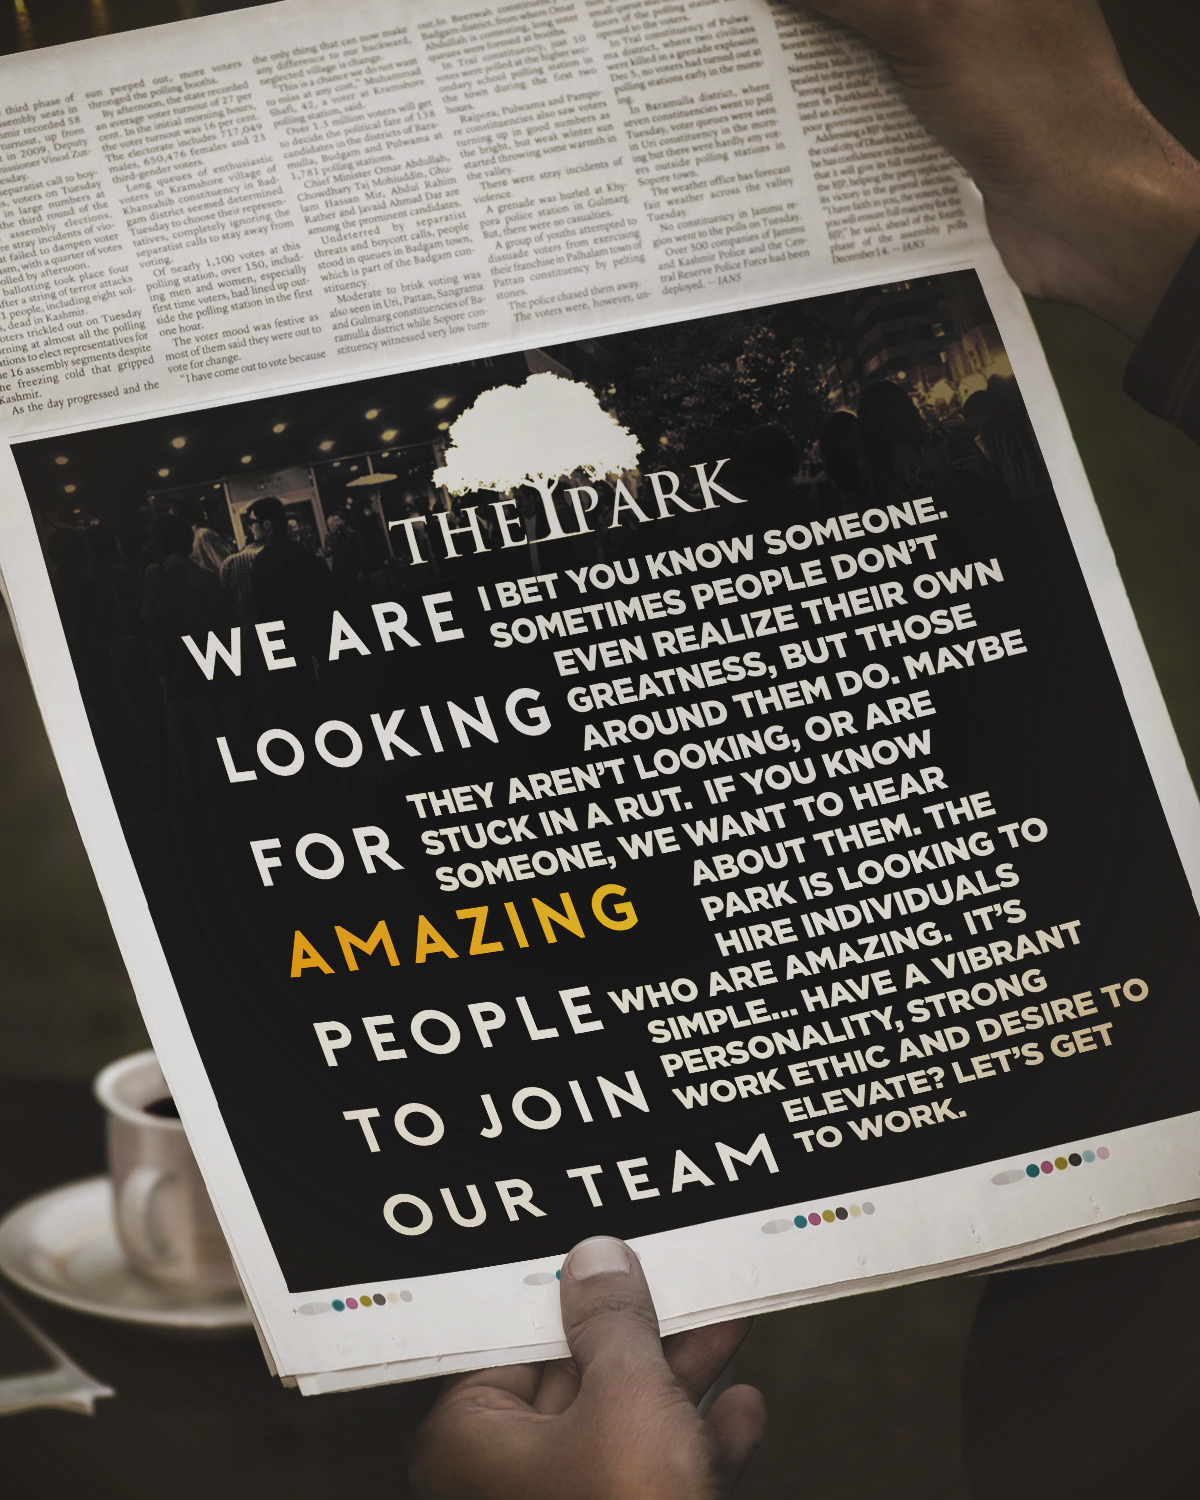 We are Hiring - We are looking for amazing people to join our team.